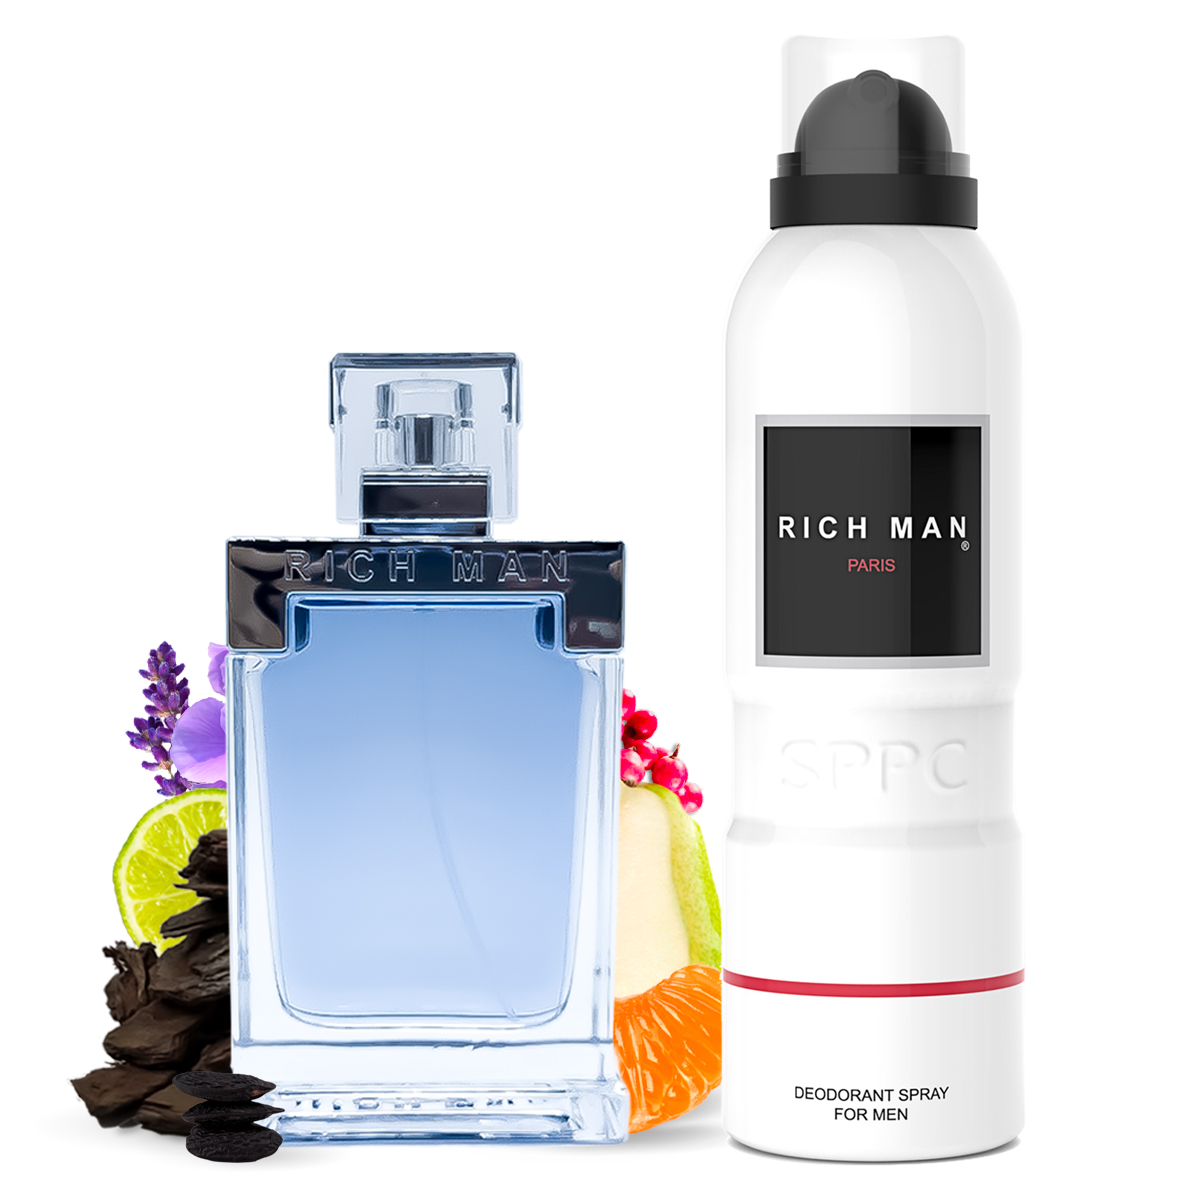 Kit Perfume Rich Man 100ml e Desodorante 200ml Paris Bleu